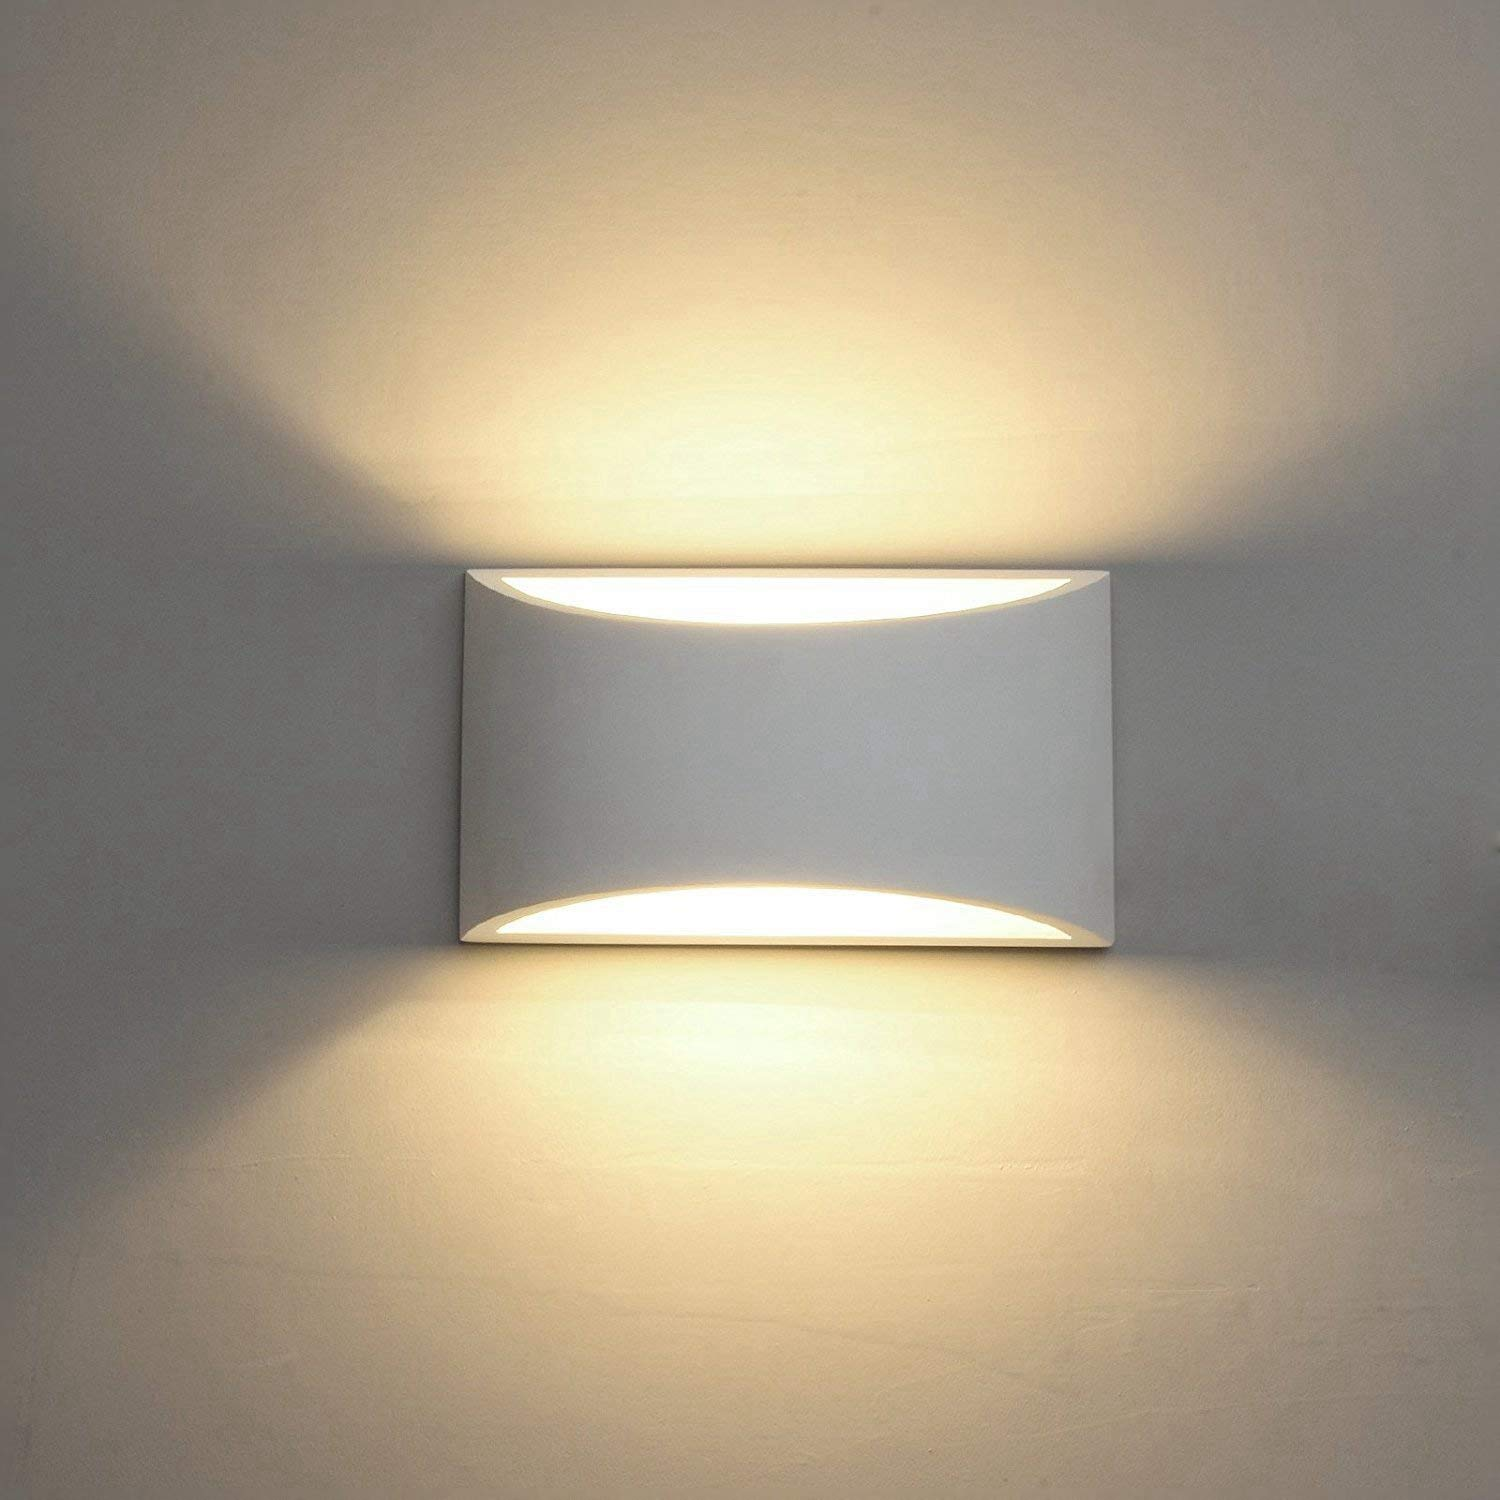 Modern Led Wall Sconces Sconces Wall Mounted Wall Lighting Fixture 7w Warm White 2700k Up And Down Wall Lamps For Living Room Bedroom Hallway Porch Corridor Stairs Conservatory Motion Sensor Walmart Com Walmart Com